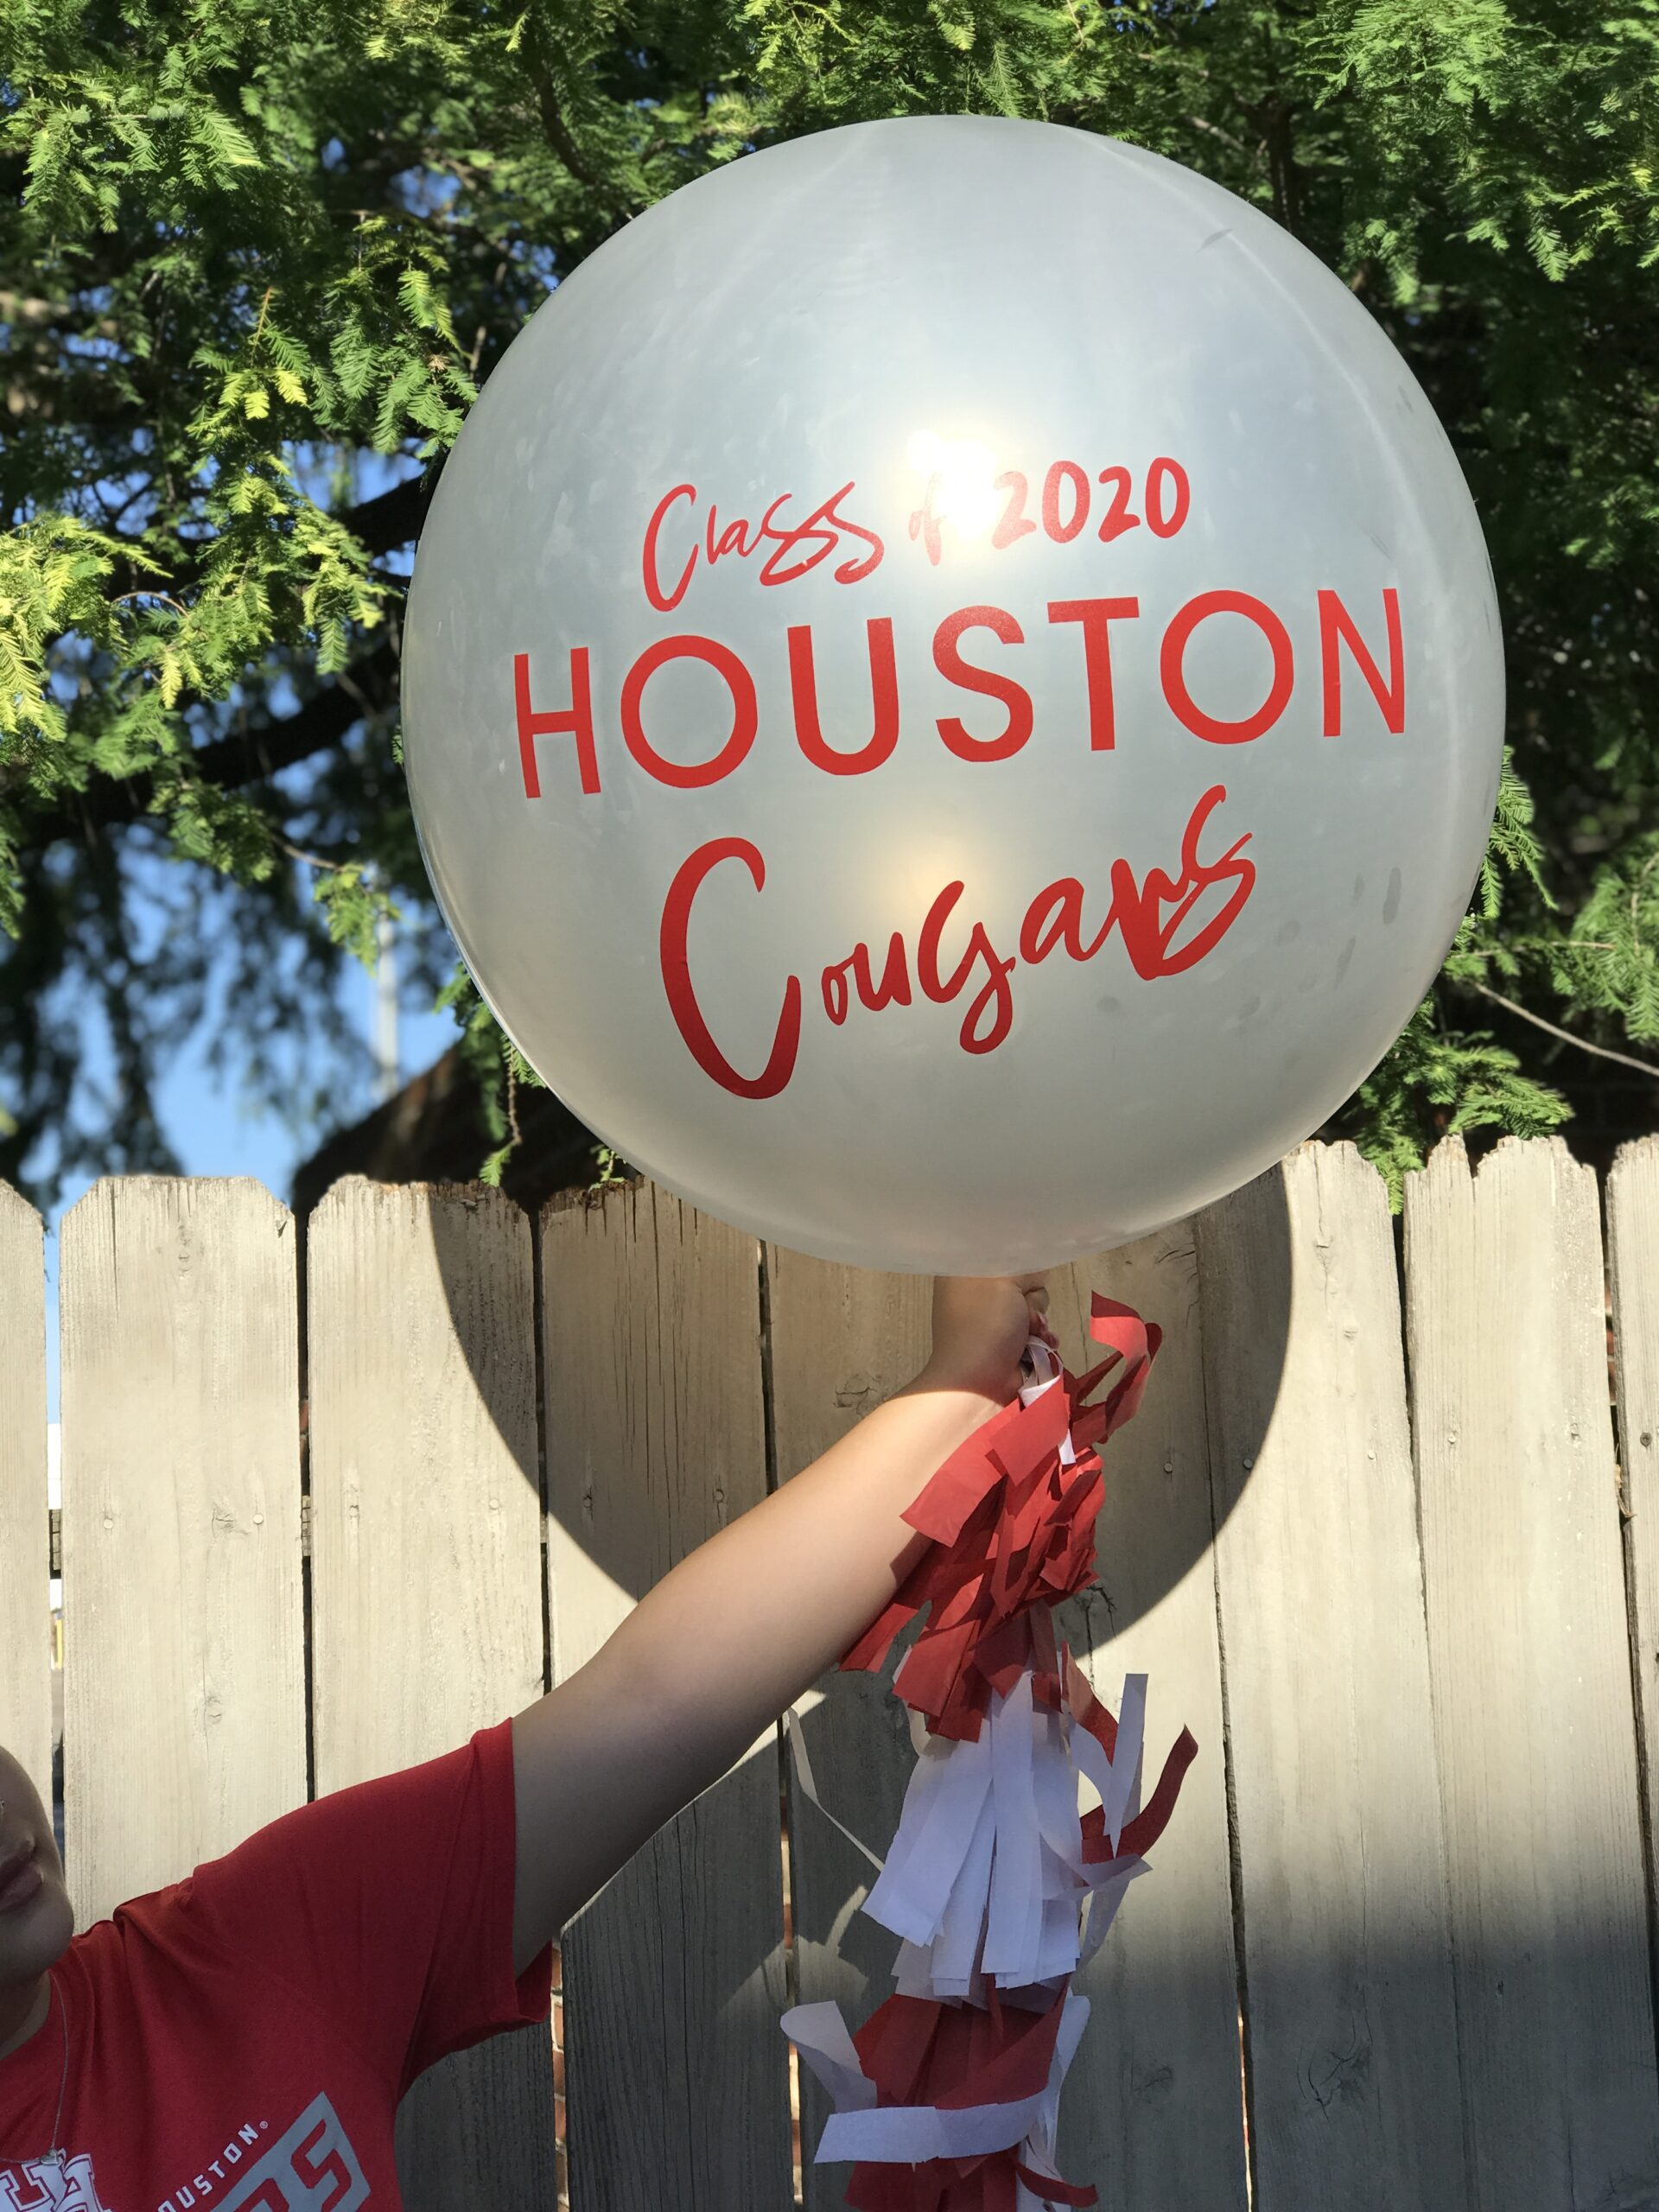 Where to find cougars in houston